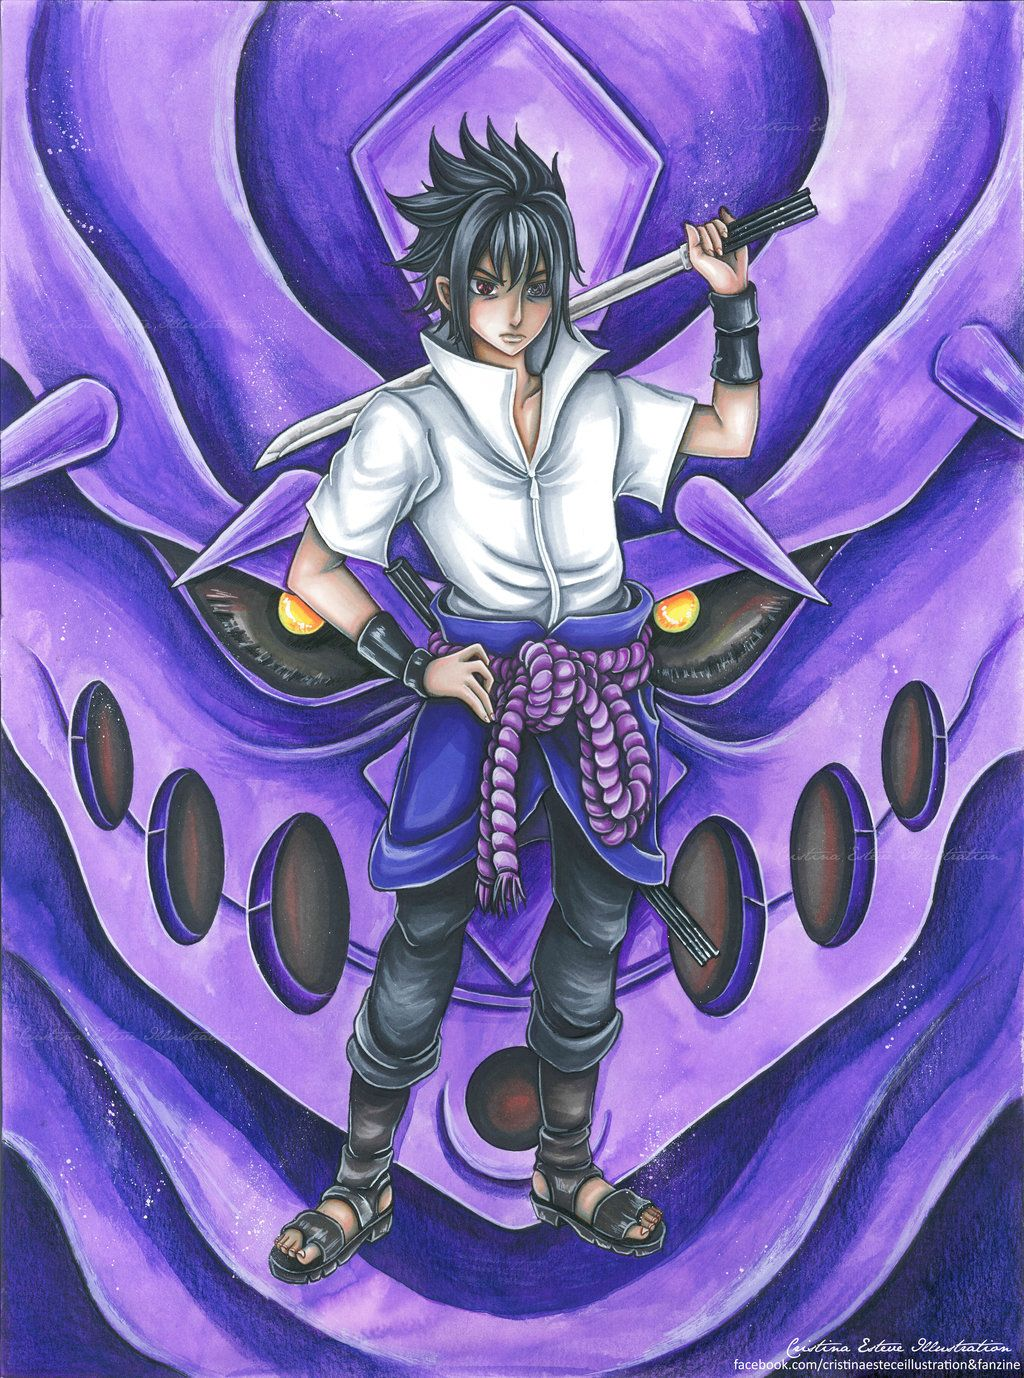 Uchicha Sasuke Rinnegan Mode Fanart Naruto By Crisangy88 On